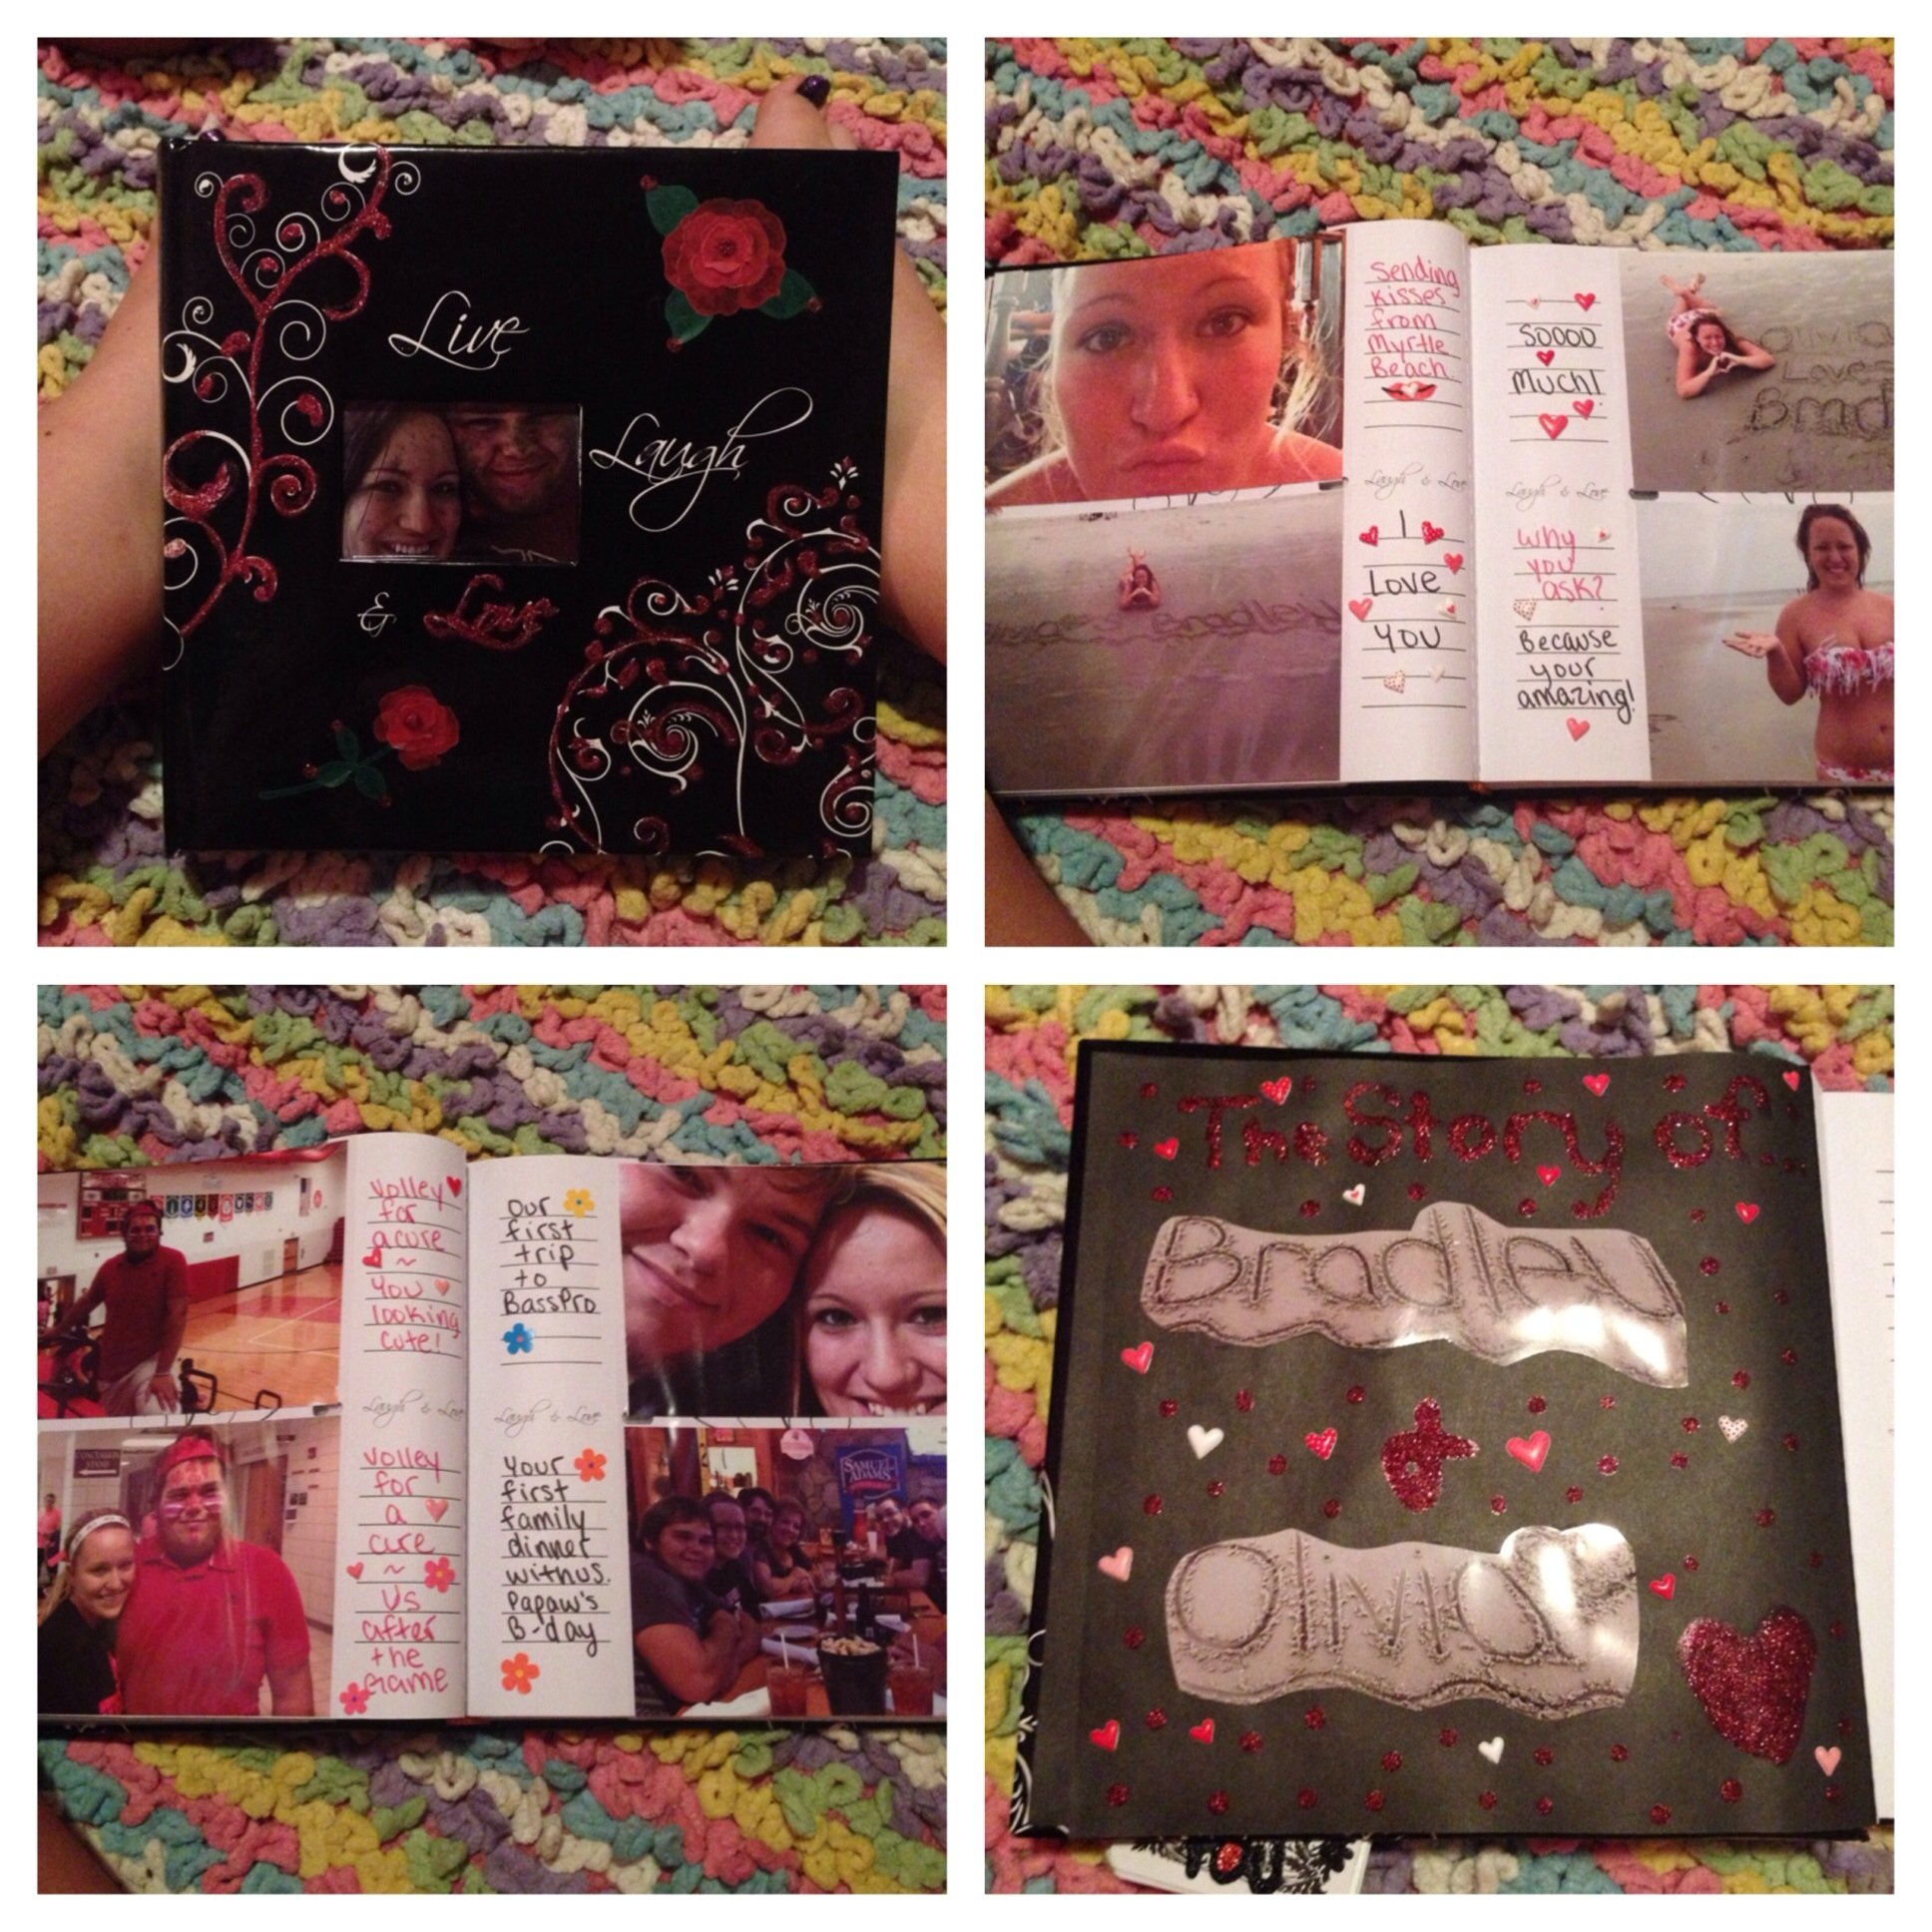 photo album i made my boyfriend. ❤ it's a great diy gift for your